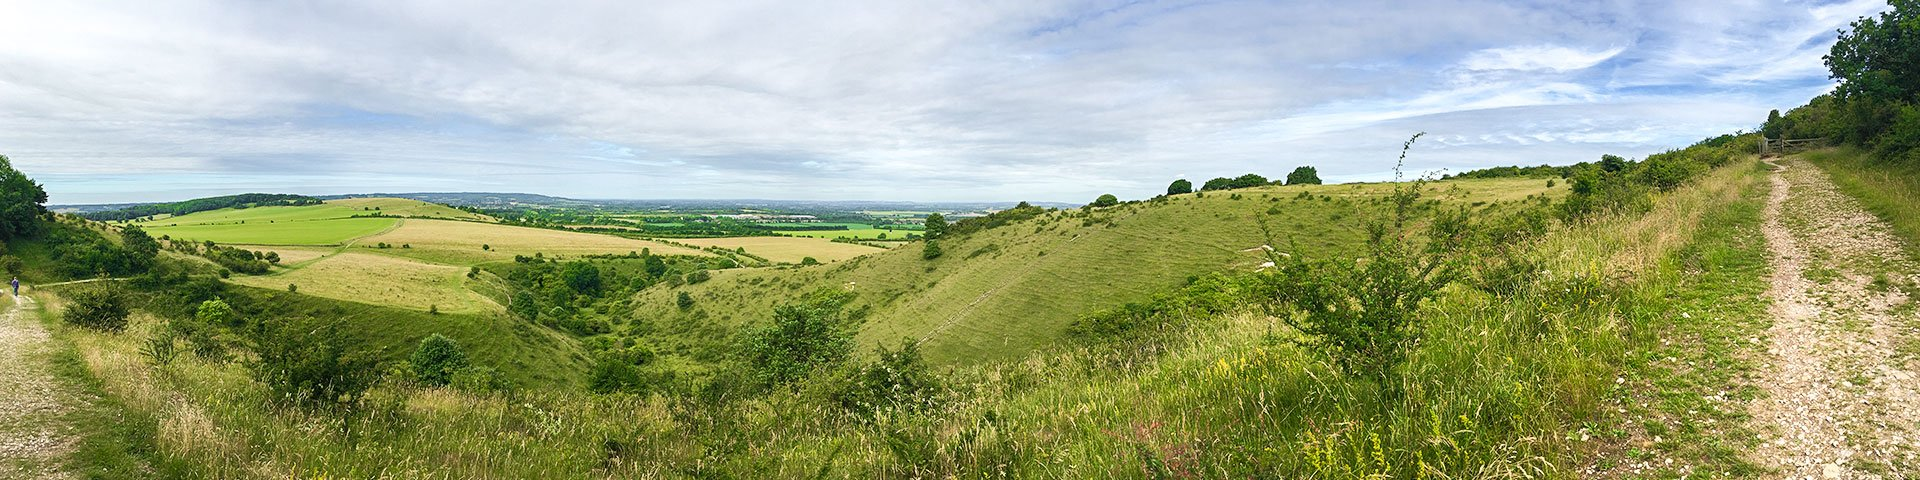 Hiking in Chiltern Hills, England